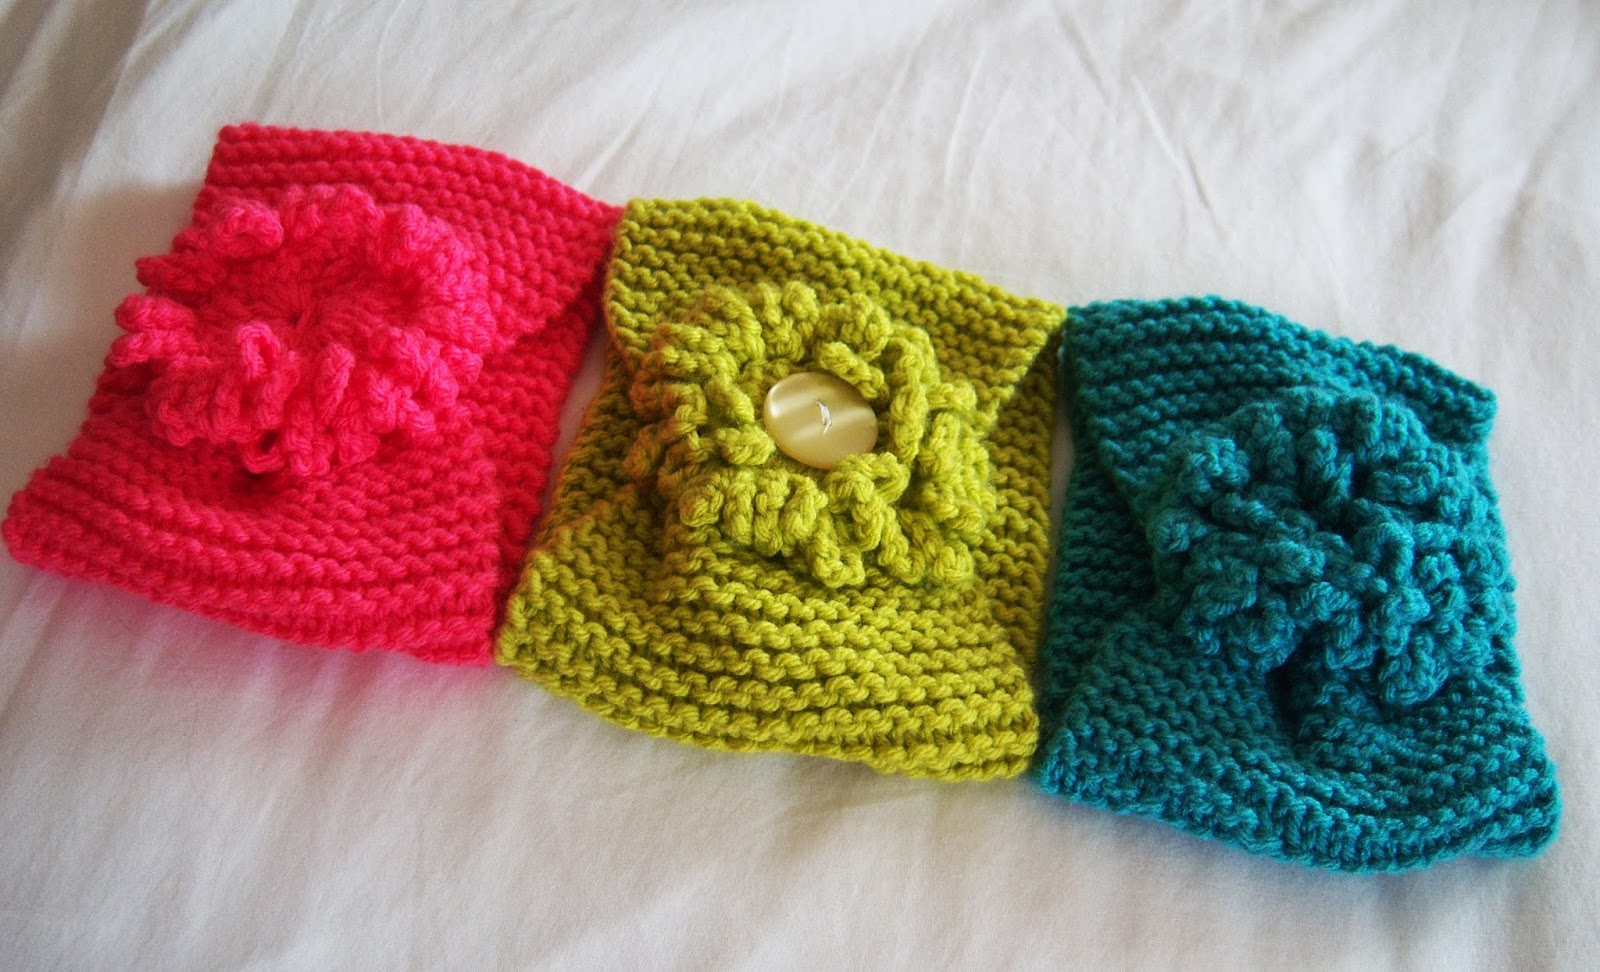 Cable Knitting Patterns For Scarves : Shoregirls Creations: Knitted Head Wrap